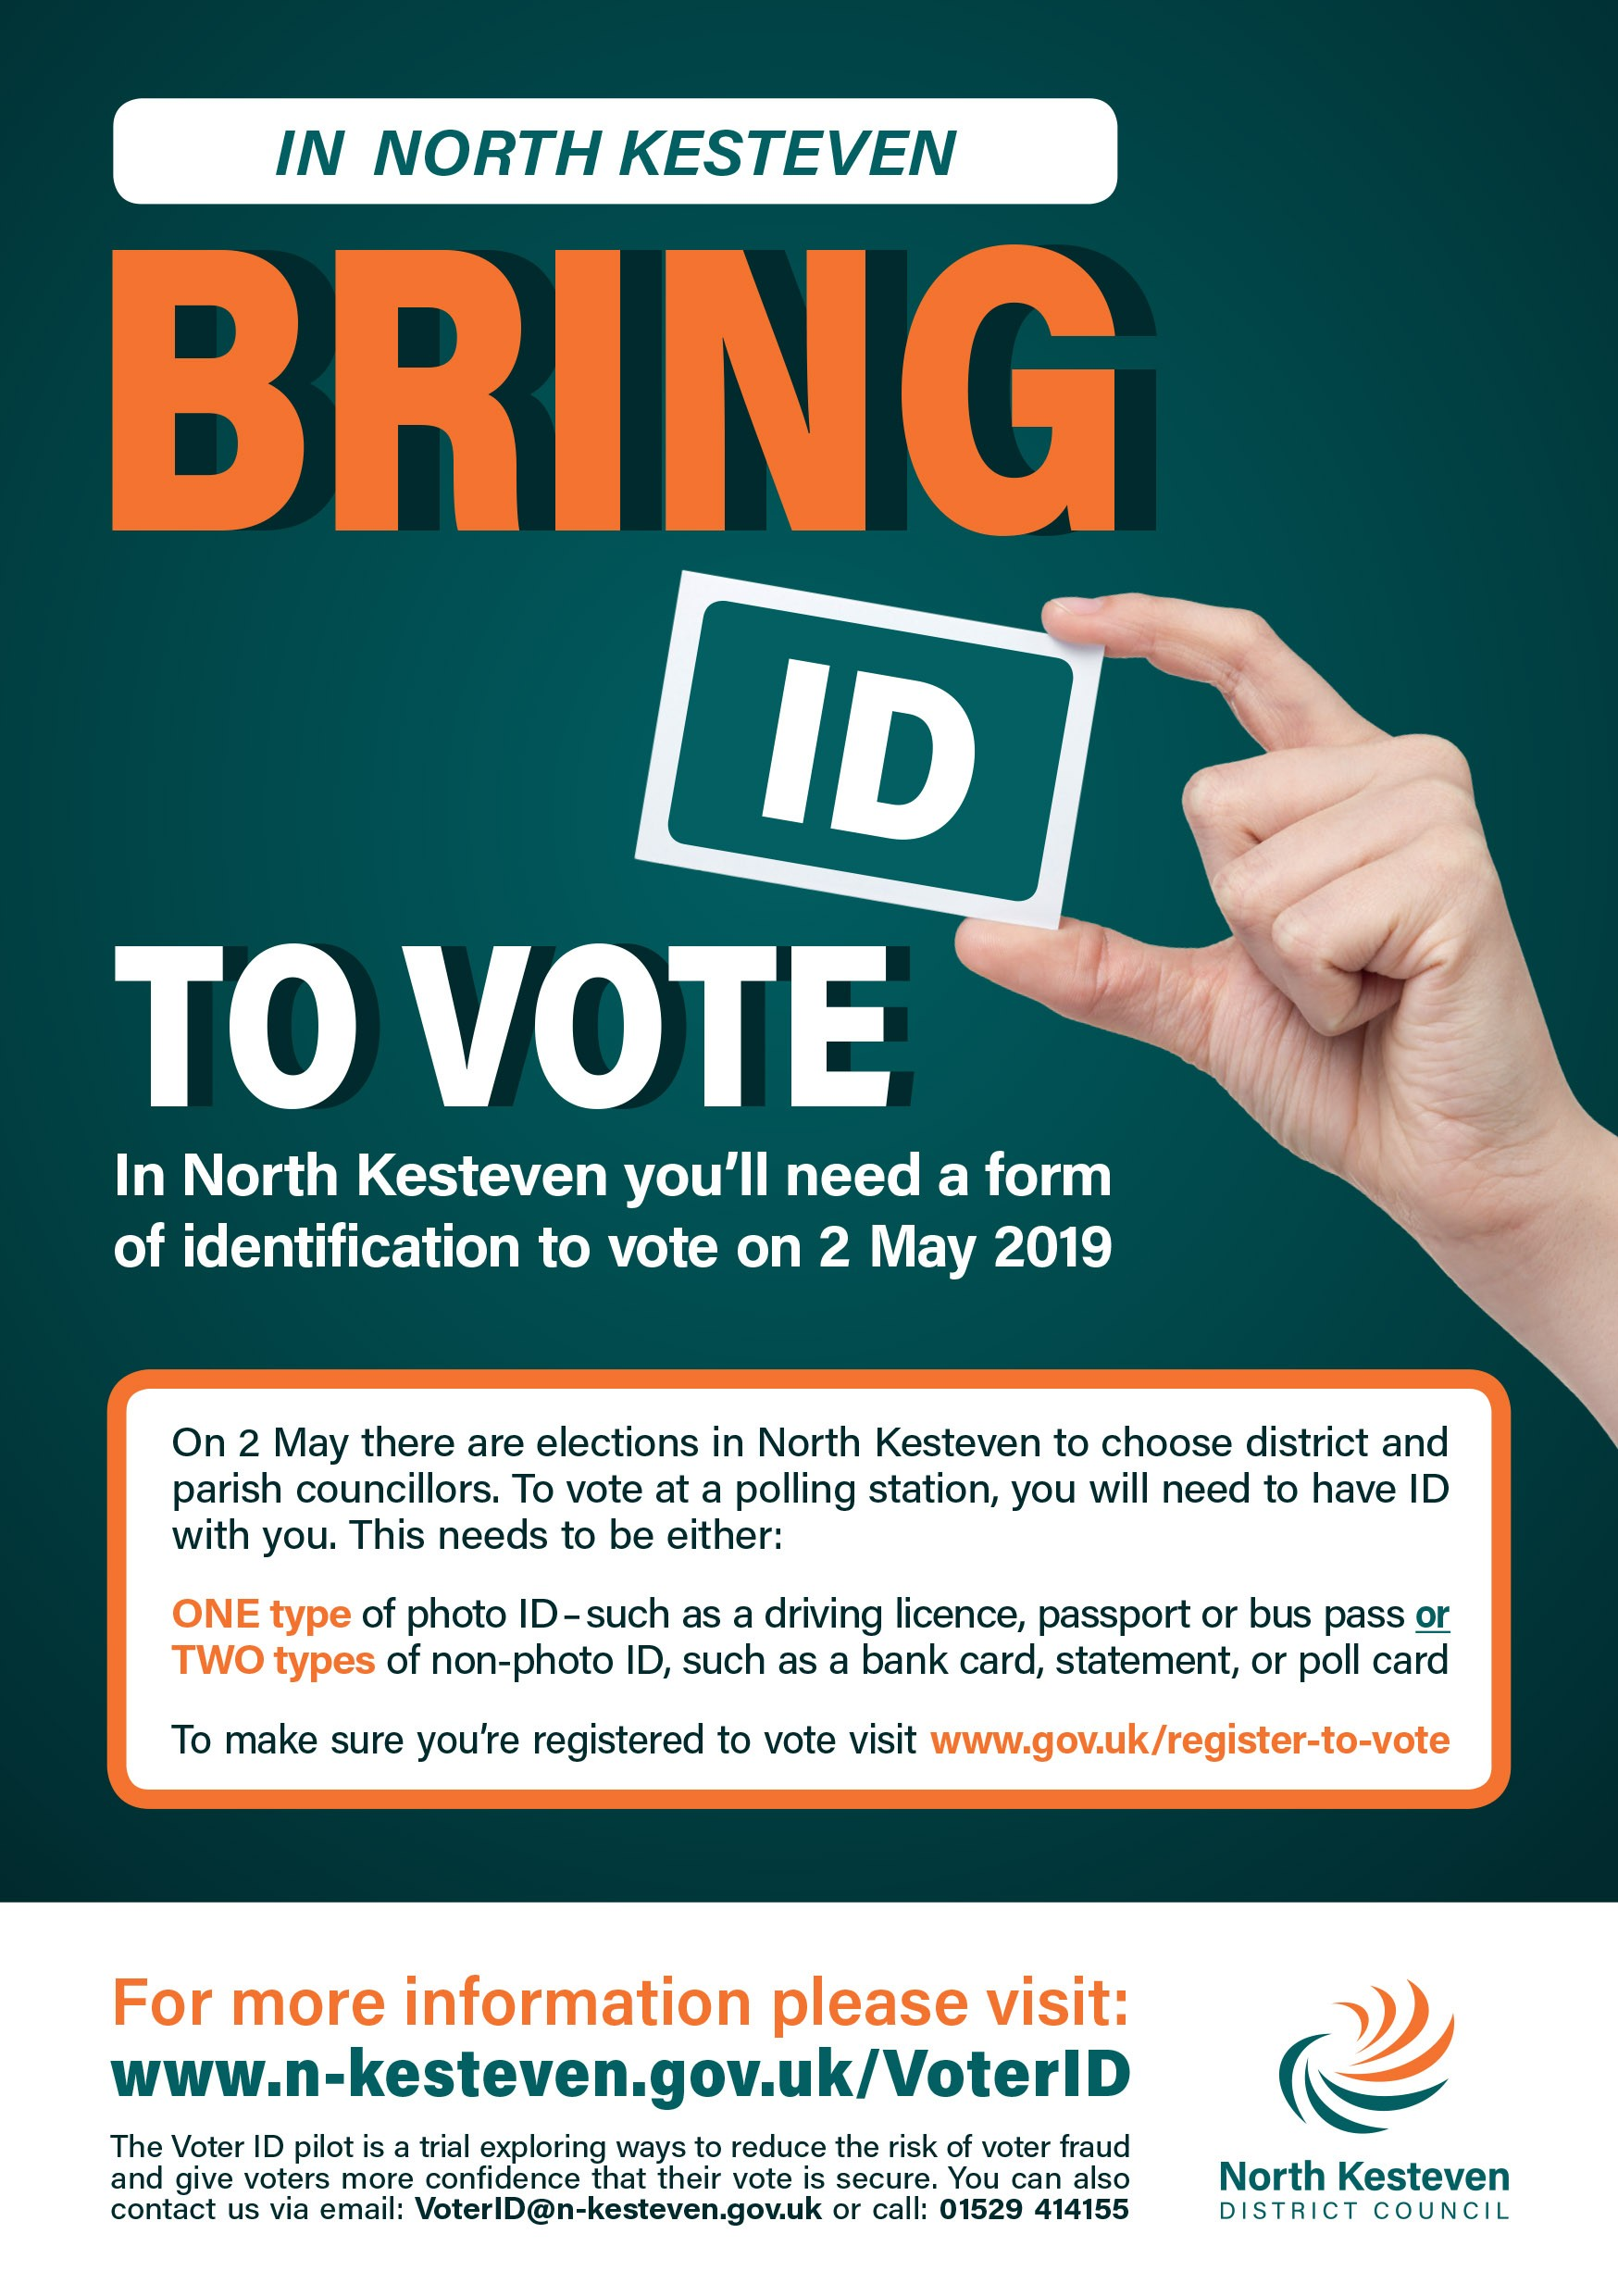 You must bring ID to vote in North Kesteven